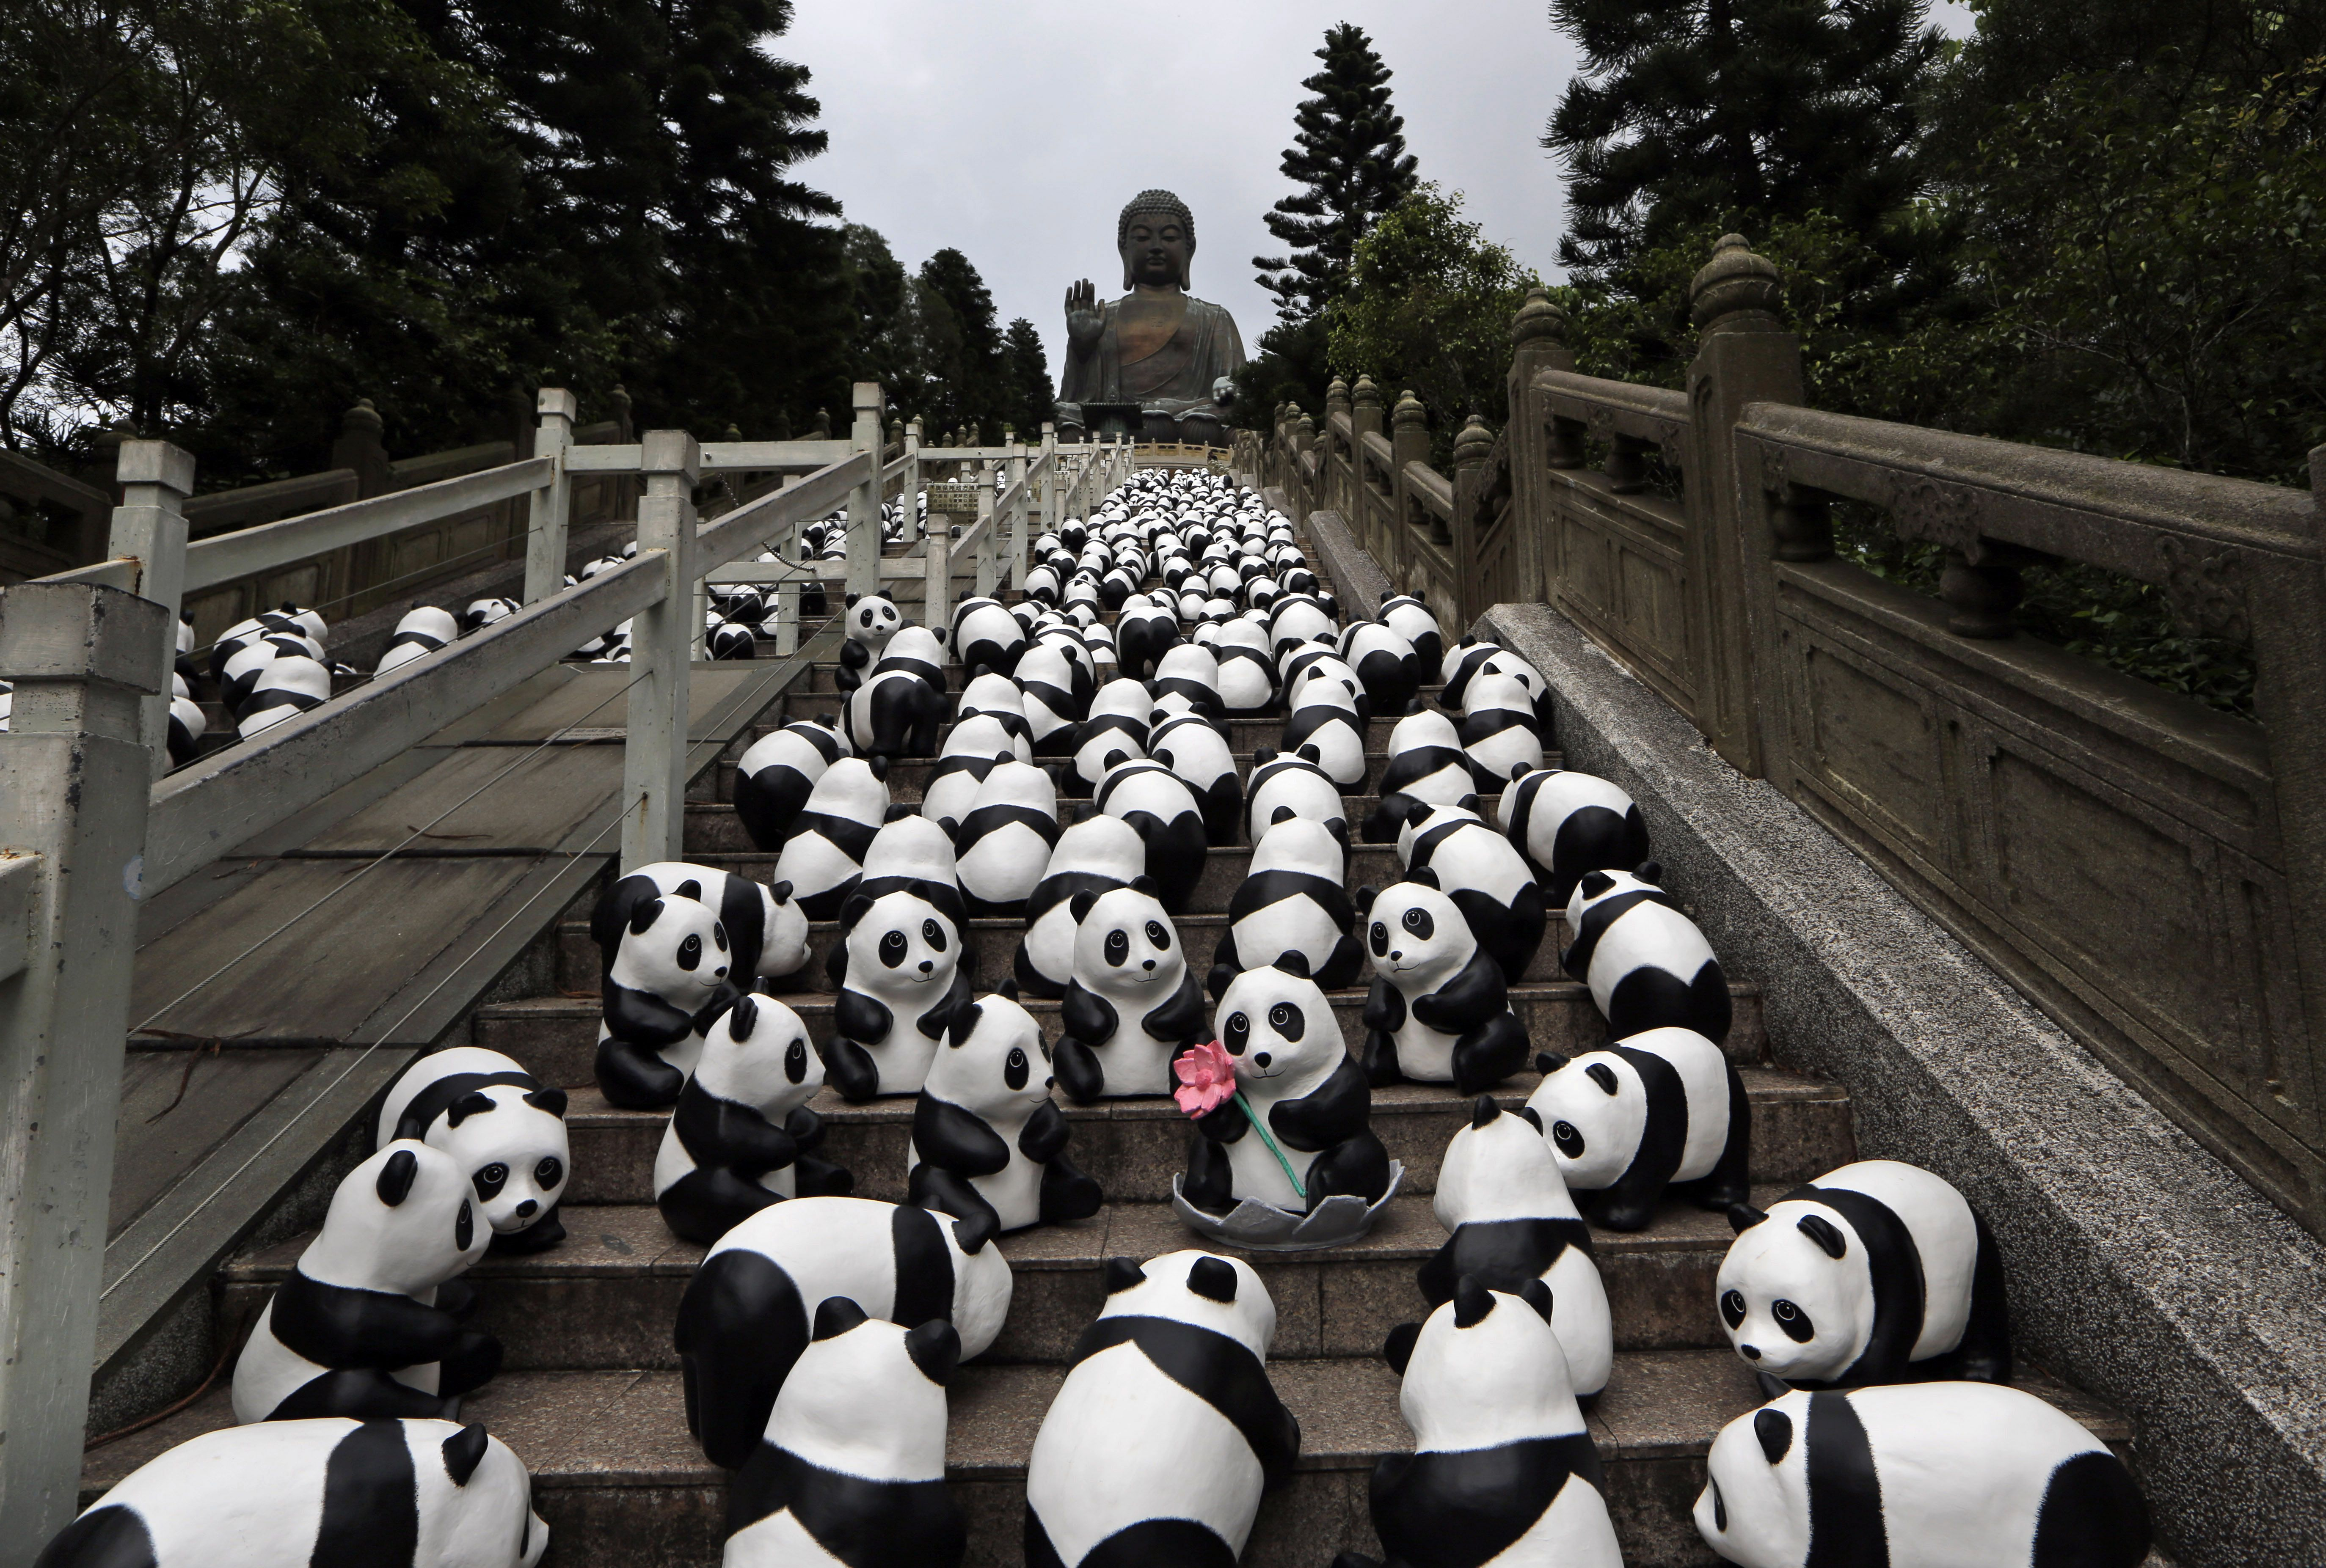 Part Of The 1 600 Paper Pandas Created By French Artist Paulo